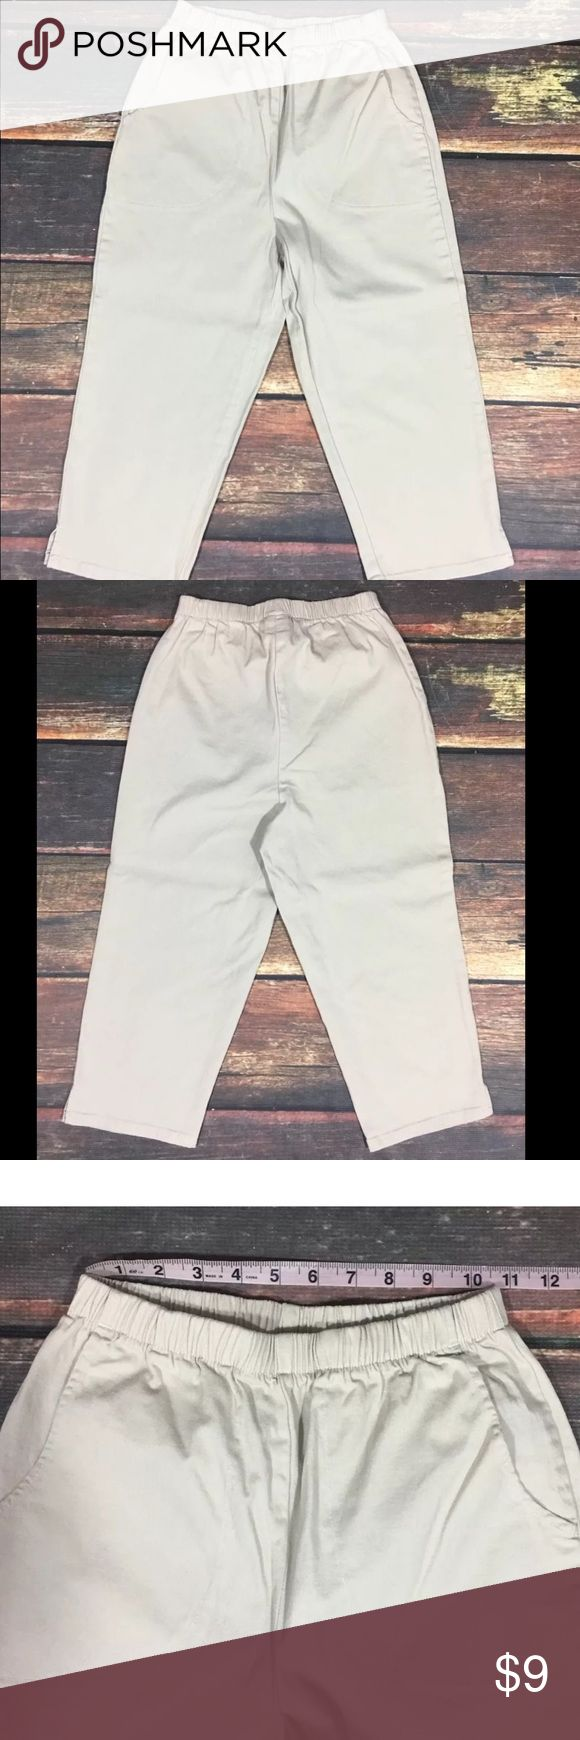 Denim & Co Khaki Capri Pants Women's capri pants by Denim & Co. Khaki color. Elastic stretch waist. Pockets. QVC item number A14924.   See photos for measurement details.  96% cotton, 4% spandex.  No rips, tears, stains, or flaws. From a smoke free home.  B010 Denim & Co Pants Capris